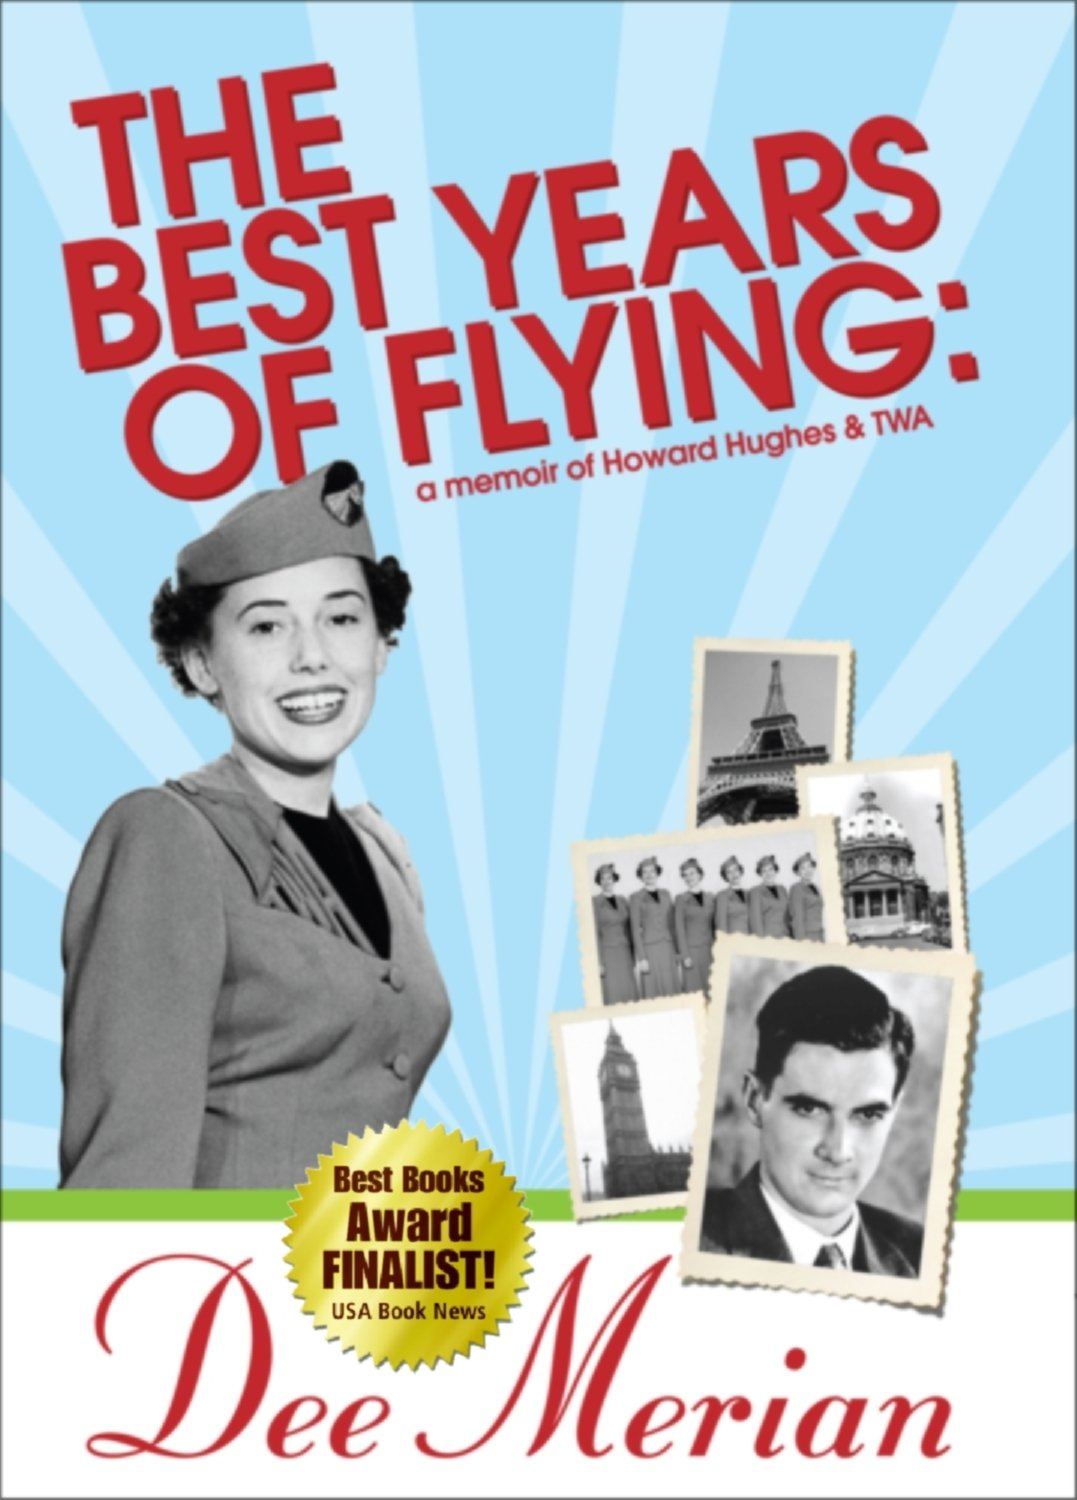 The Best Years of Flying: A Memoir of Howard Hughes & TWA